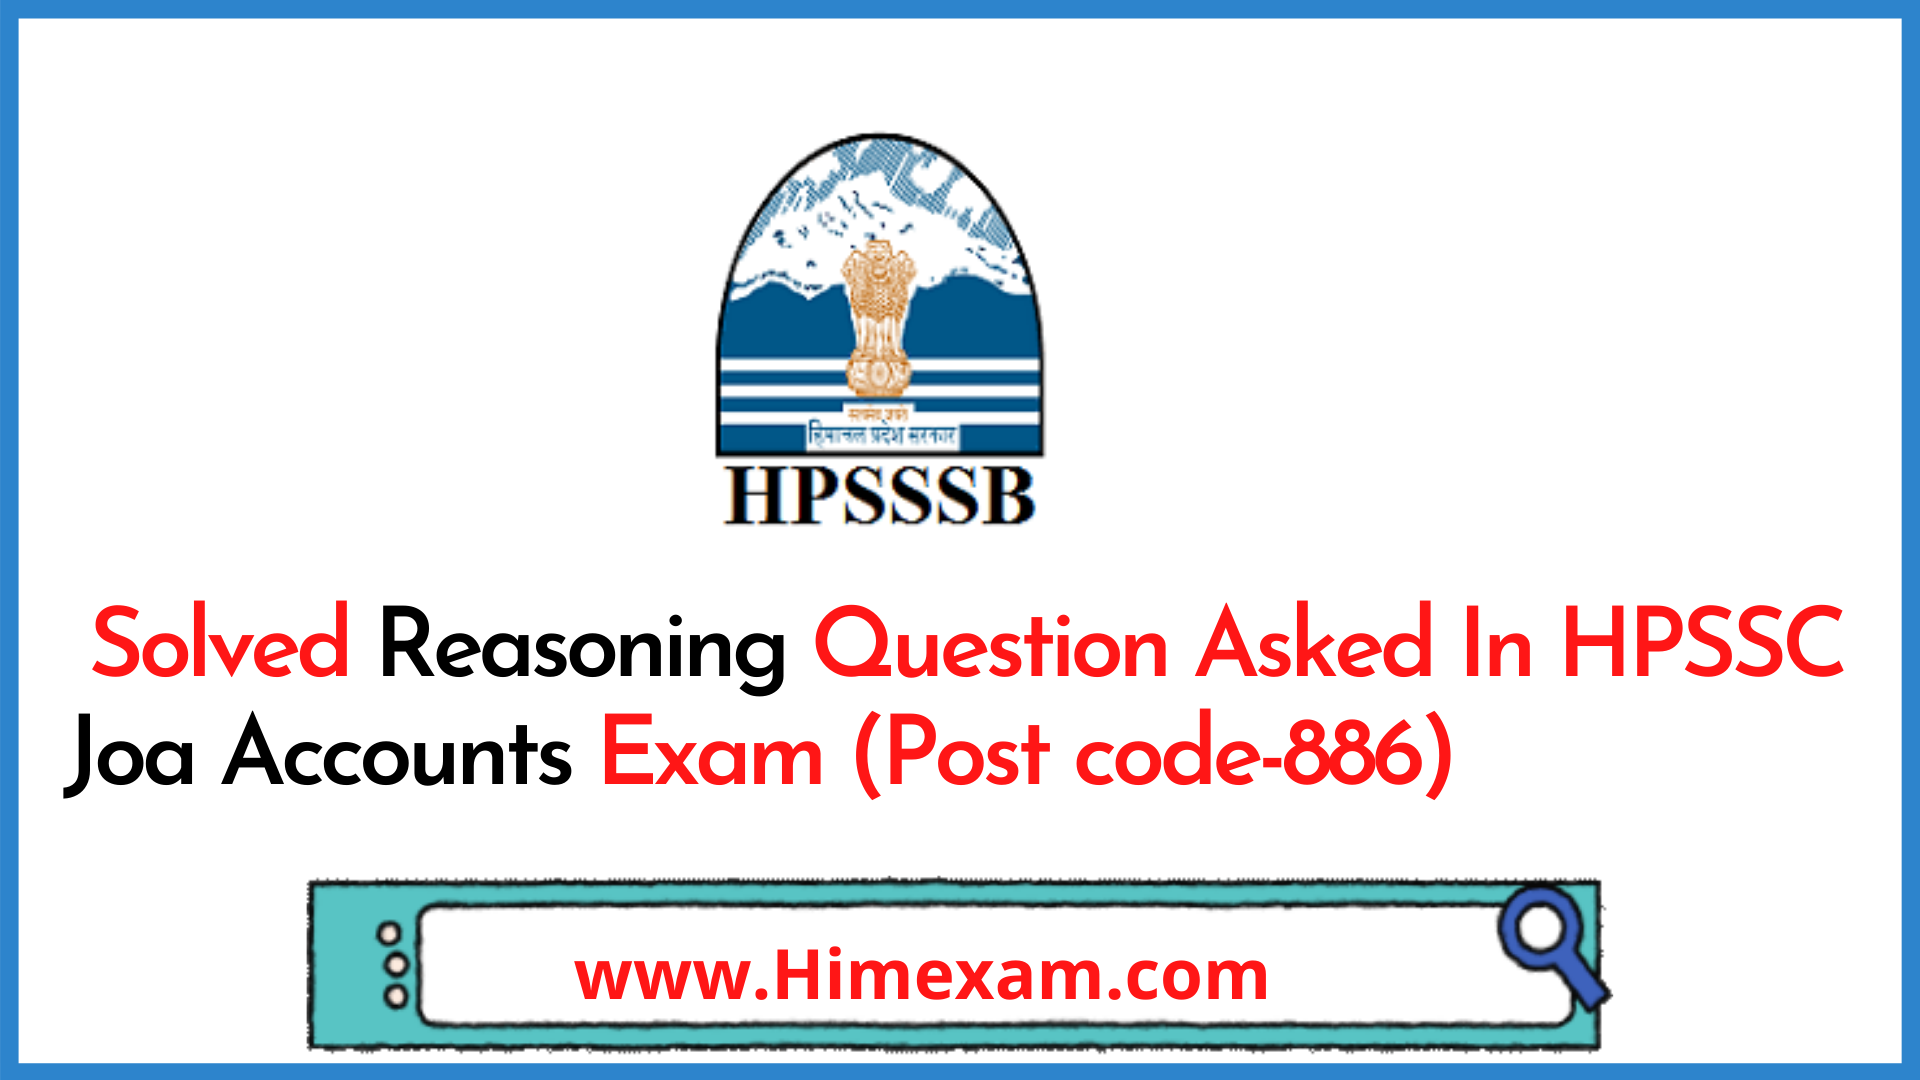 Solved Reasoning Question Asked In HPSSC Joa Accounts Exam (Post code-886)